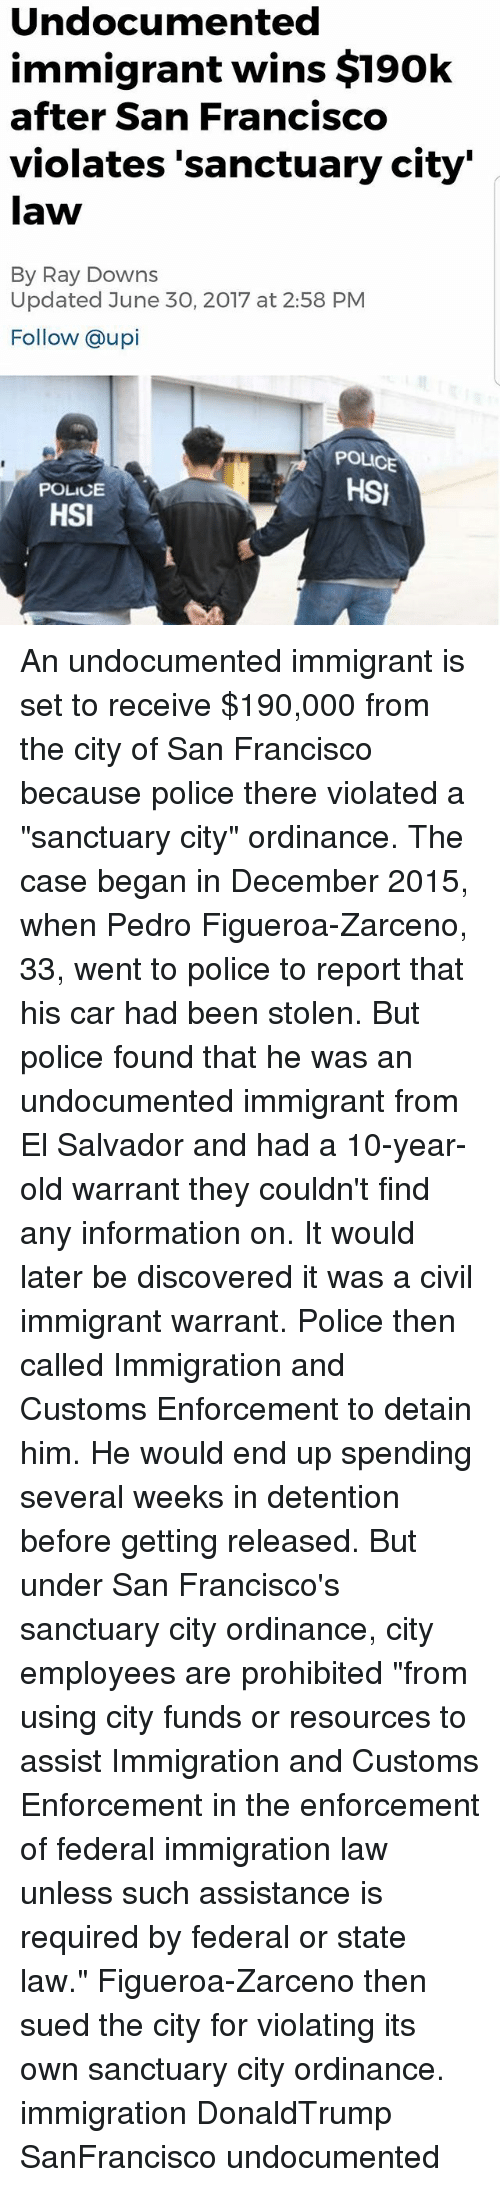 """ordinance: Undocumented  immigrant wins $190k  after San Francisco  violates 'sanctuary city'  law  By Ray Downs  Updated June 30, 2017 at 2:58 PM  Follow @upi  POLICE  HSI  POLICE  HSI An undocumented immigrant is set to receive $190,000 from the city of San Francisco because police there violated a """"sanctuary city"""" ordinance. The case began in December 2015, when Pedro Figueroa-Zarceno, 33, went to police to report that his car had been stolen. But police found that he was an undocumented immigrant from El Salvador and had a 10-year-old warrant they couldn't find any information on. It would later be discovered it was a civil immigrant warrant. Police then called Immigration and Customs Enforcement to detain him. He would end up spending several weeks in detention before getting released. But under San Francisco's sanctuary city ordinance, city employees are prohibited """"from using city funds or resources to assist Immigration and Customs Enforcement in the enforcement of federal immigration law unless such assistance is required by federal or state law."""" Figueroa-Zarceno then sued the city for violating its own sanctuary city ordinance. immigration DonaldTrump SanFrancisco undocumented"""